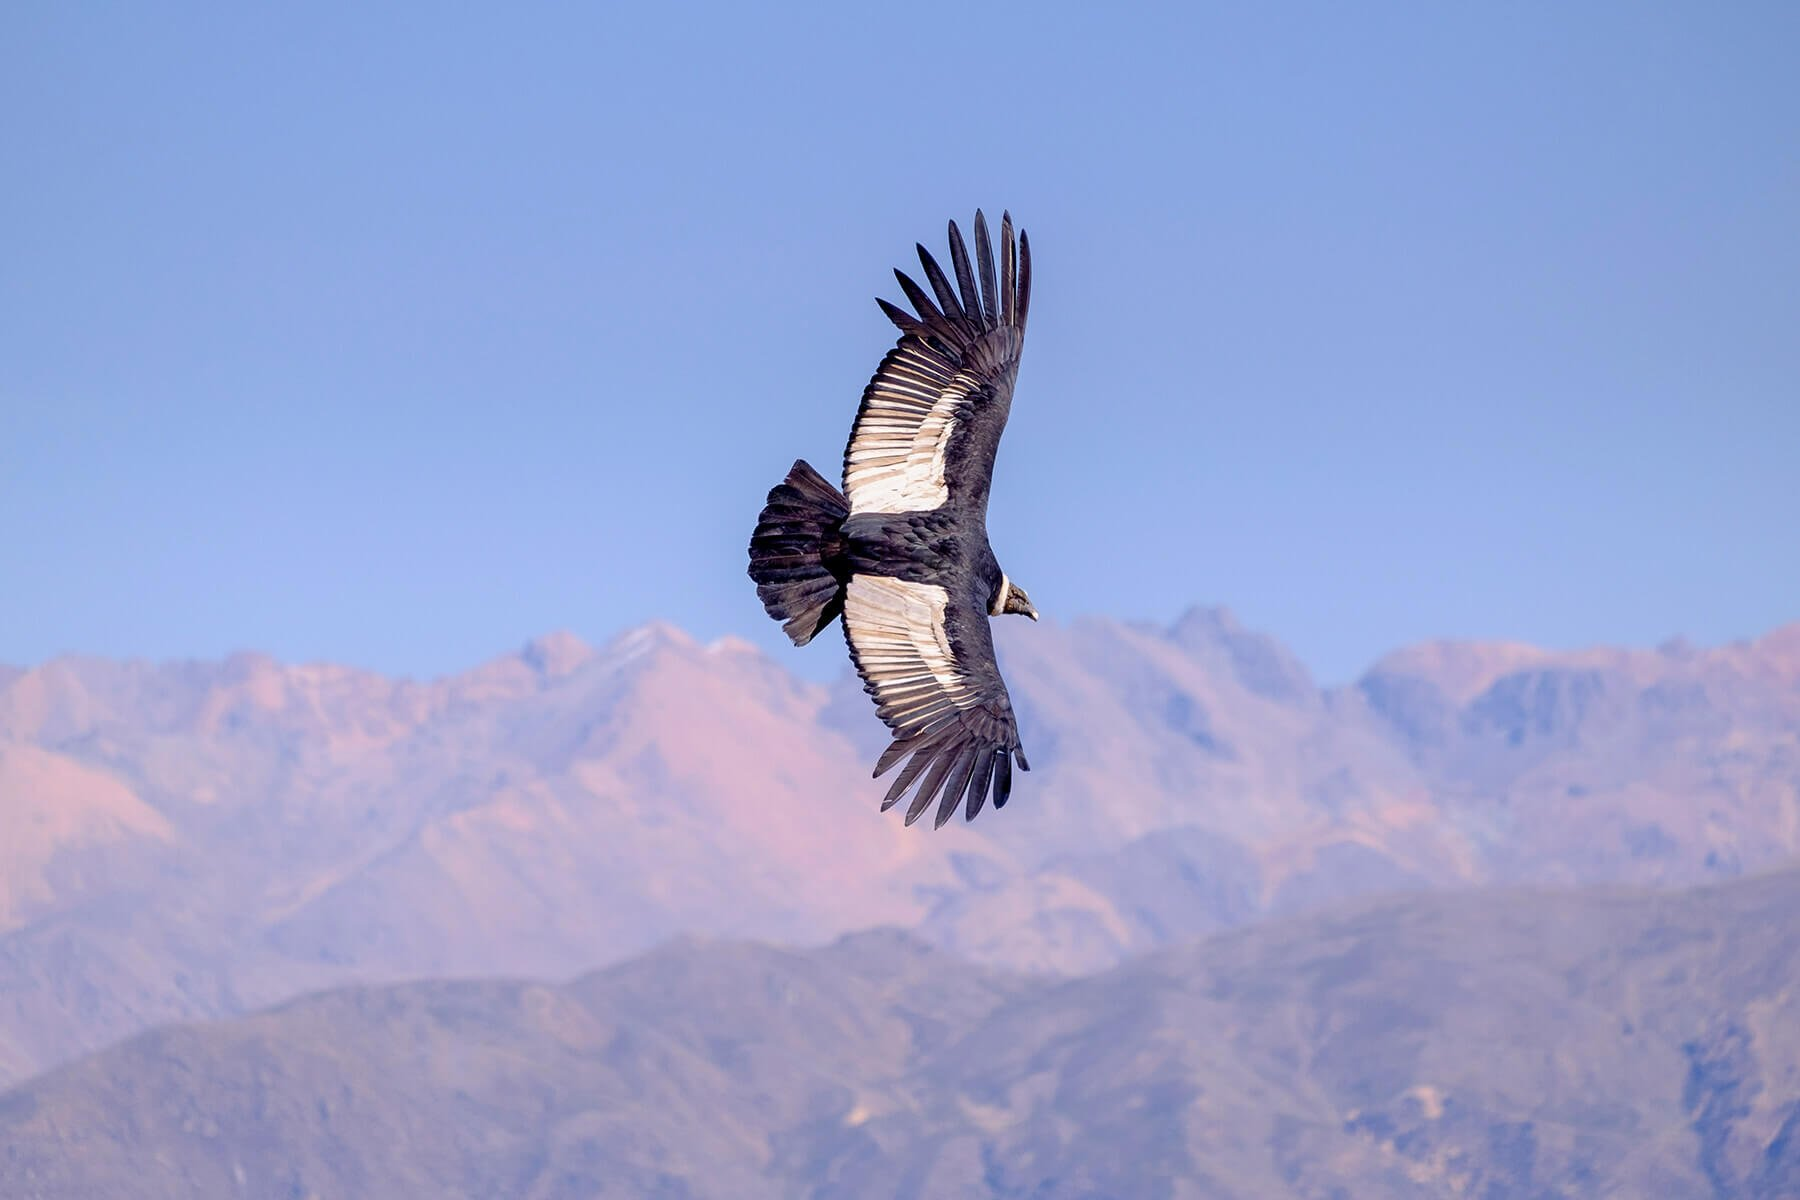 Condor flies above the Colca Canyon in Peru